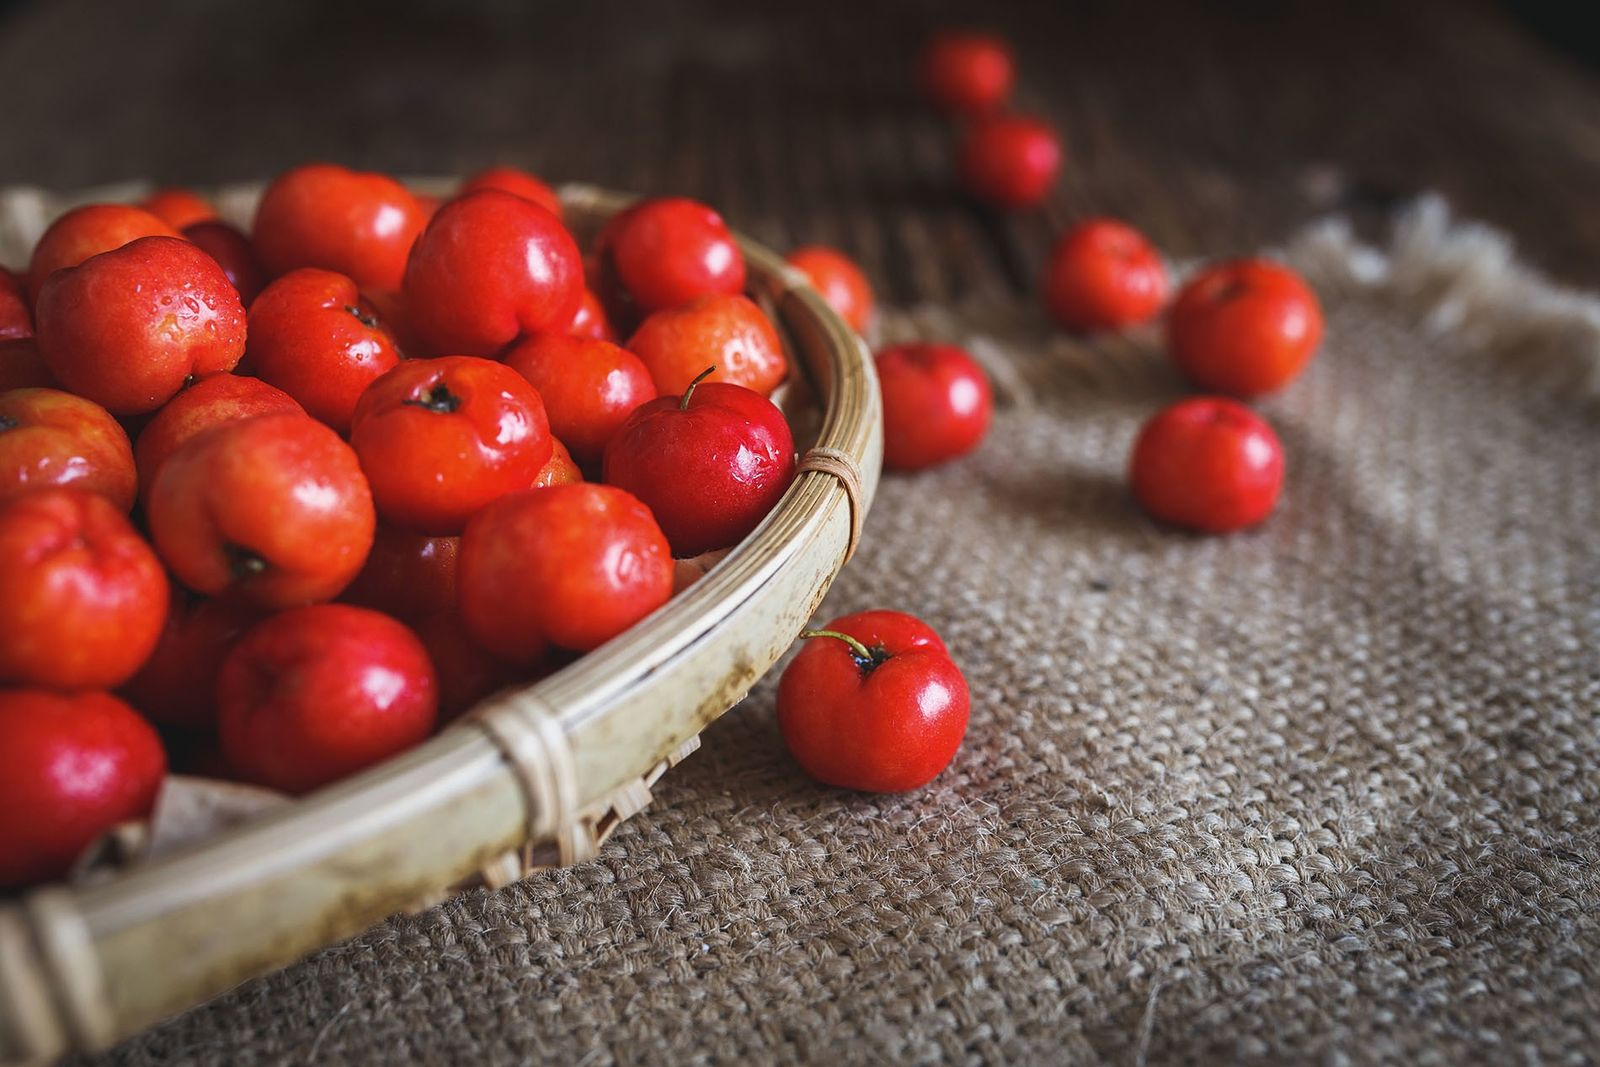 Olia Hercules's mother used to grow enormous tomatoes weighing about 700g each when she was growing ...